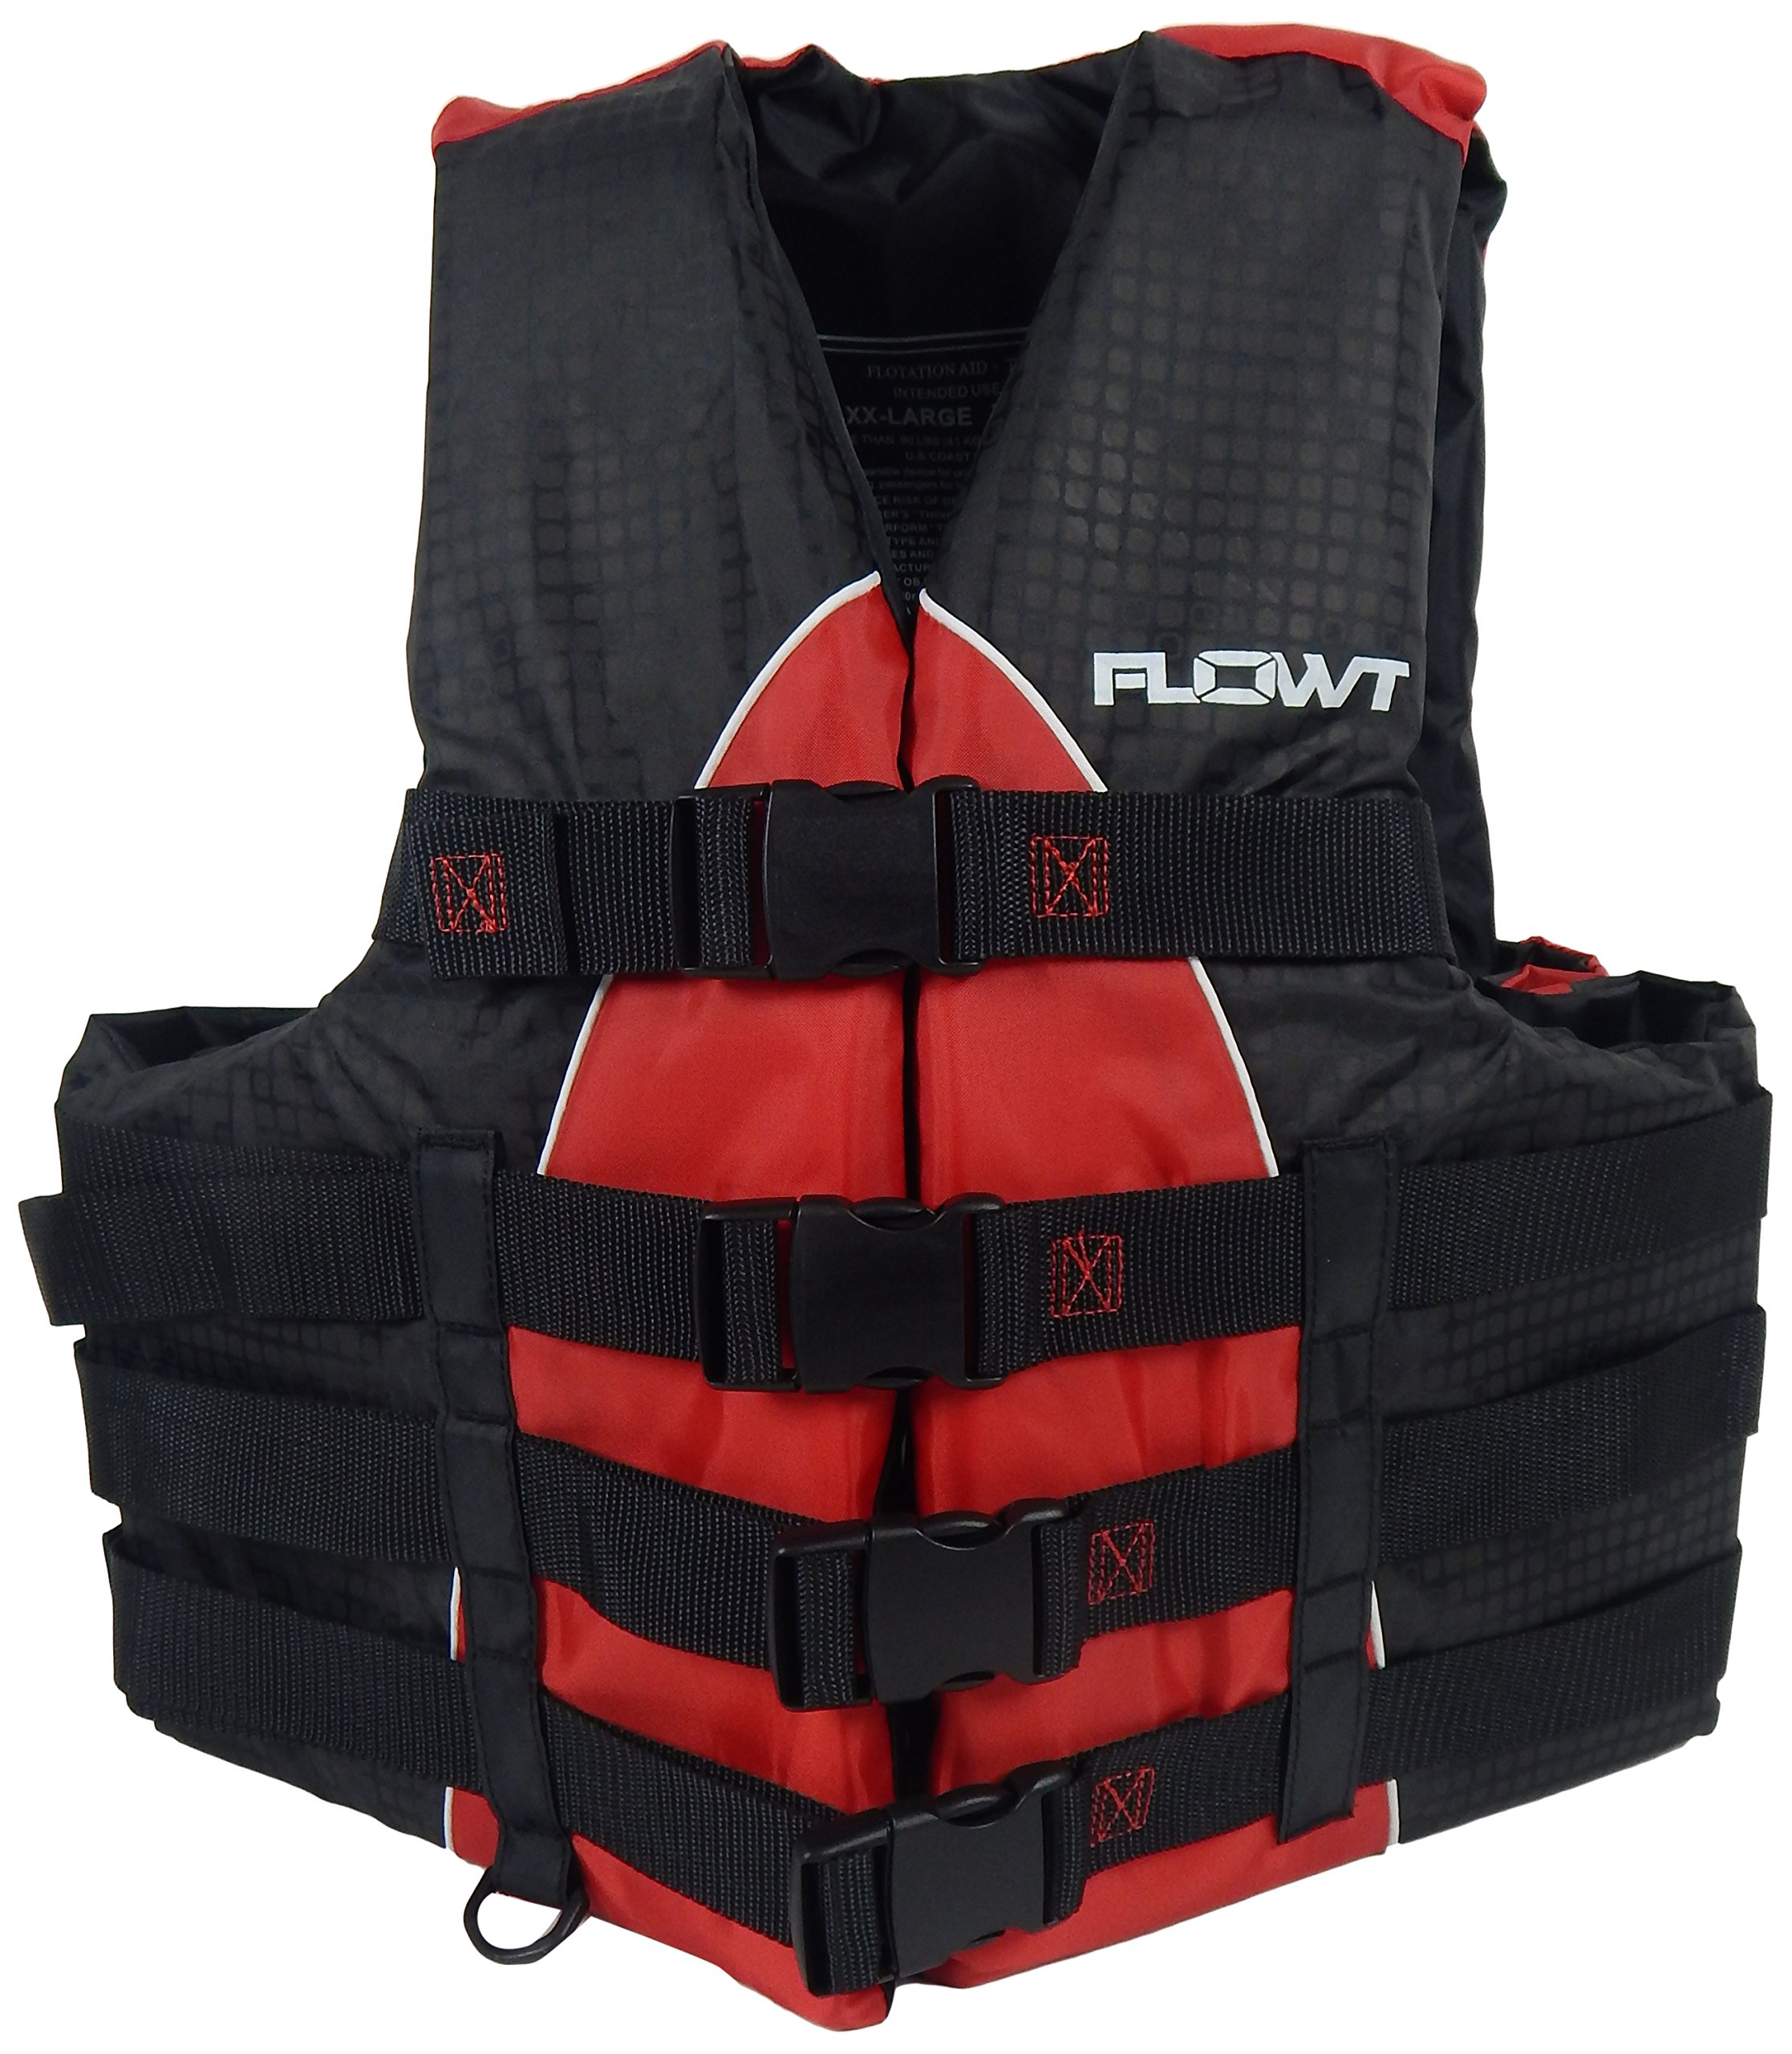 Flowt 40402-2-L/XL Extreme Sport Life Vest, Type III PFD, Closed Sides, Red, Large / Extra Large, Fits chest sizes 40'' - 50'' by Flowt